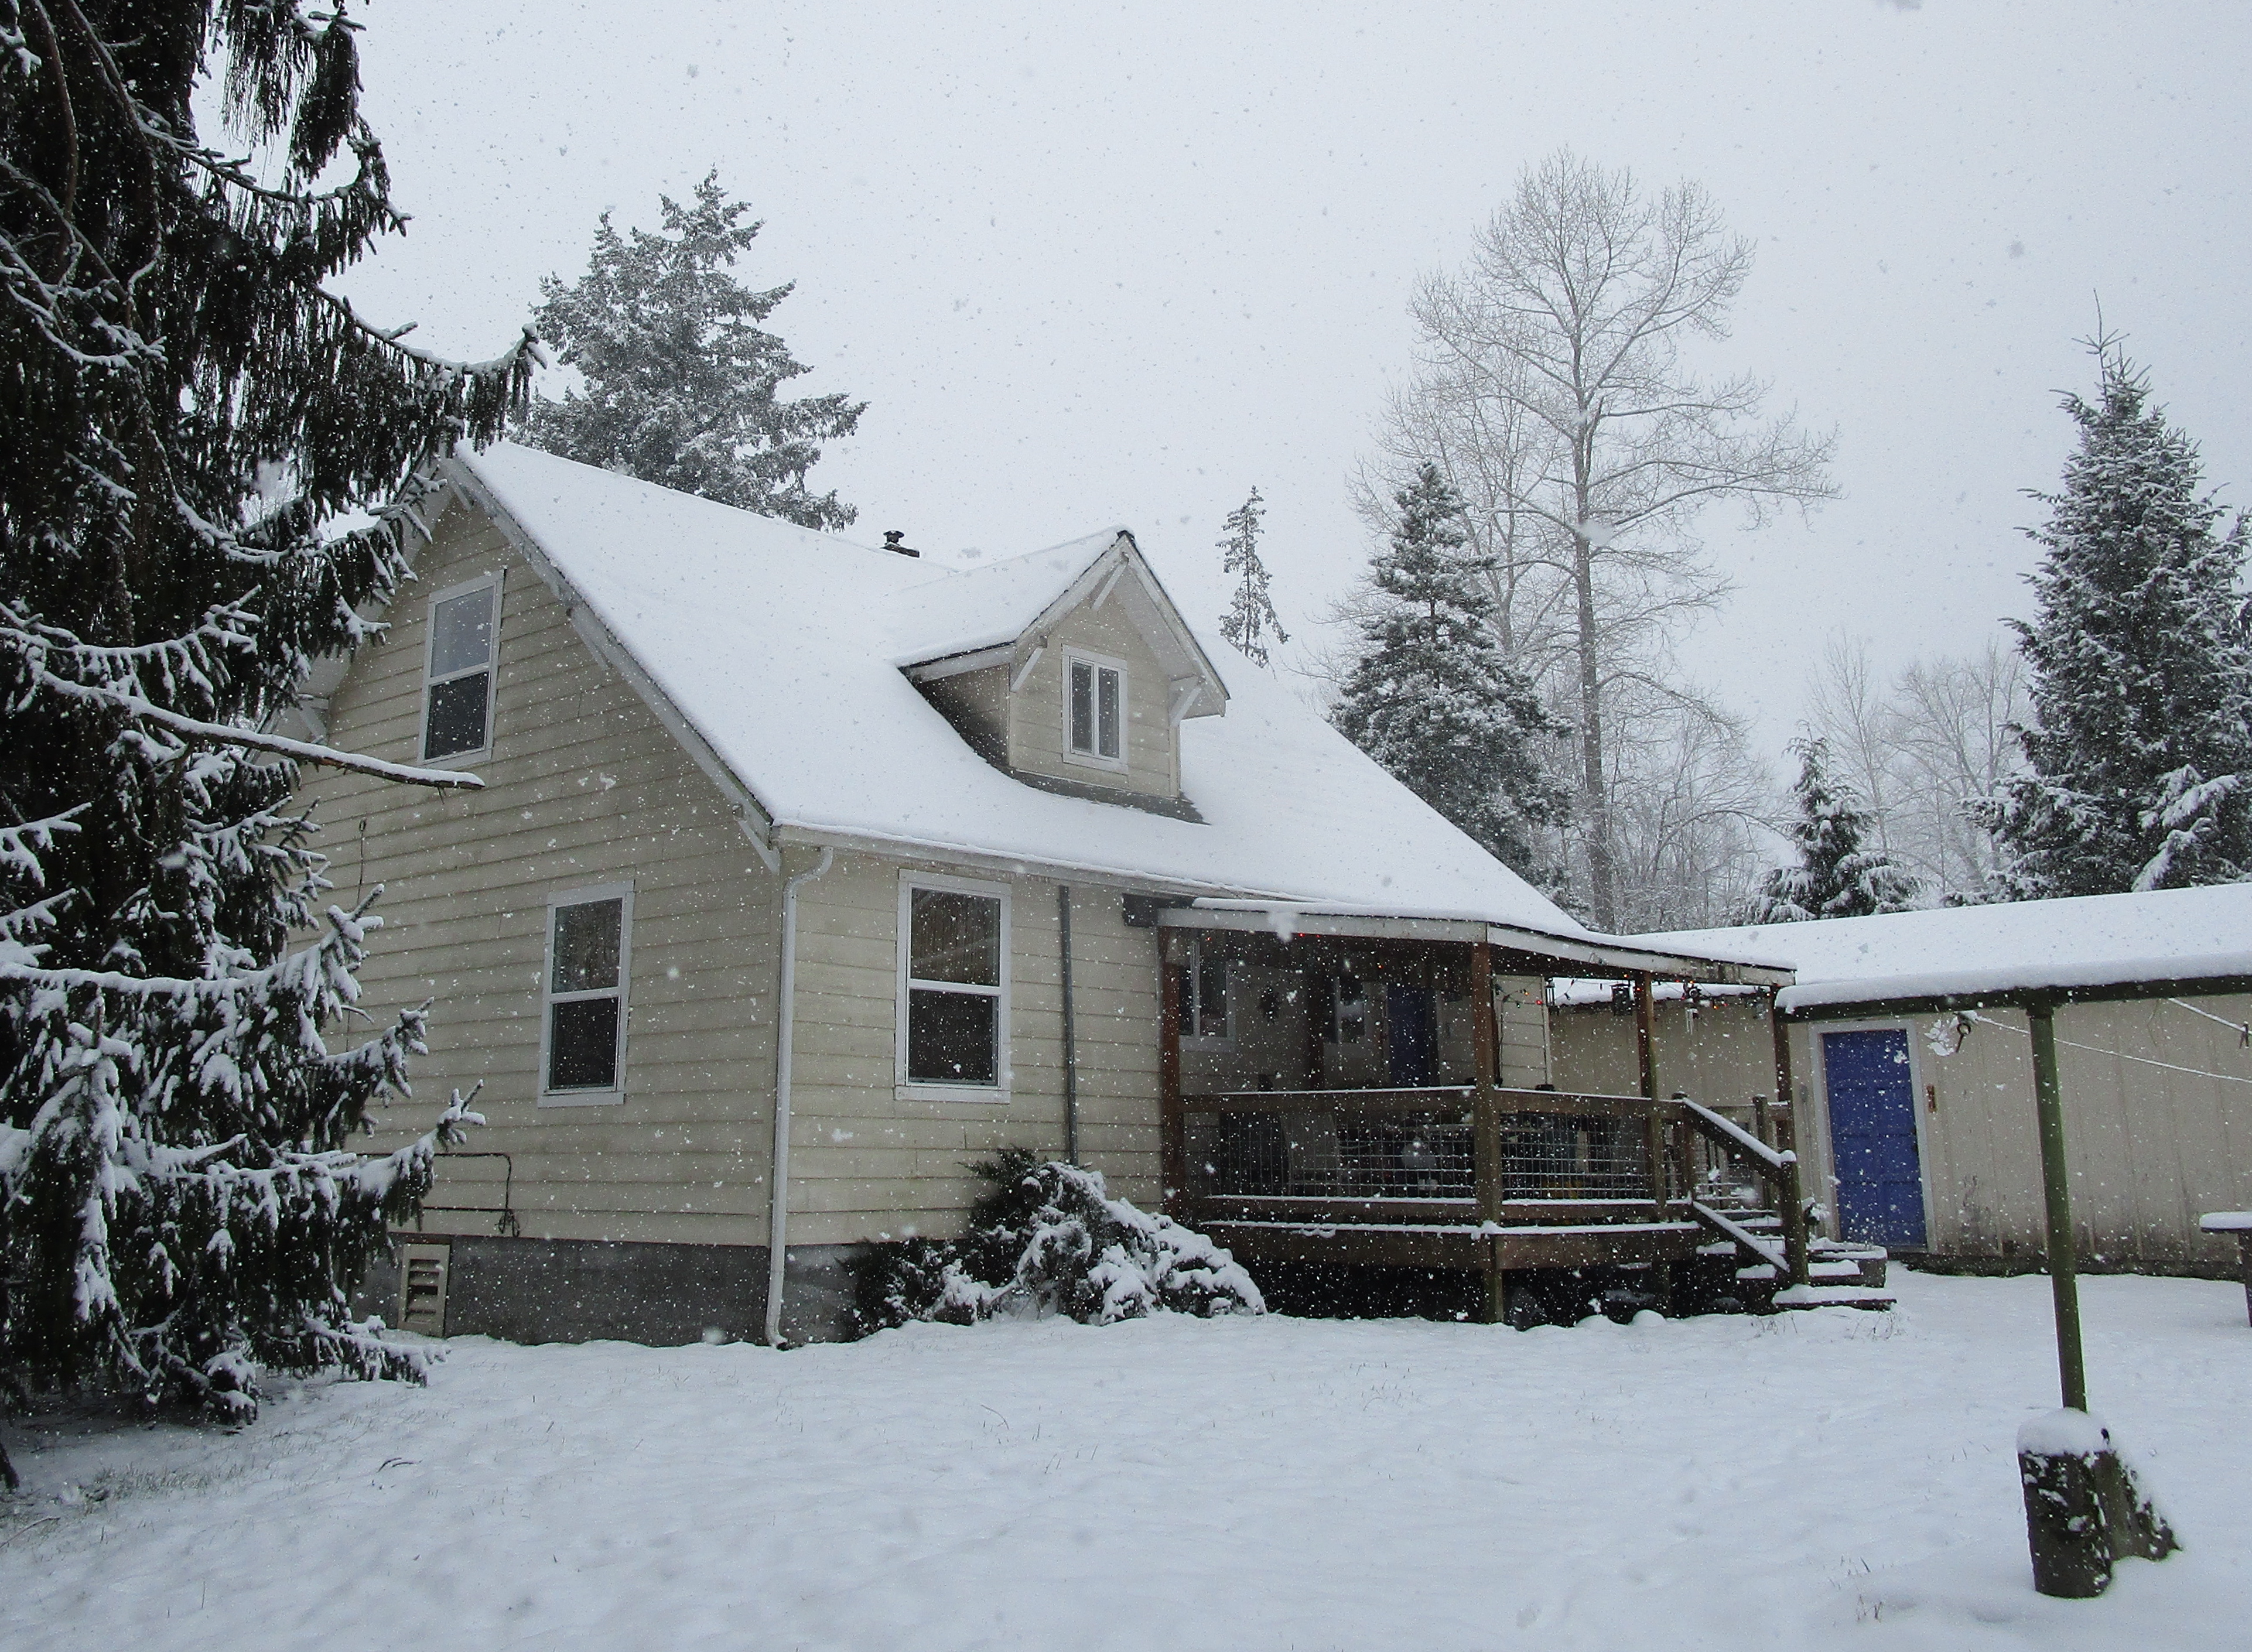 snowy back of house